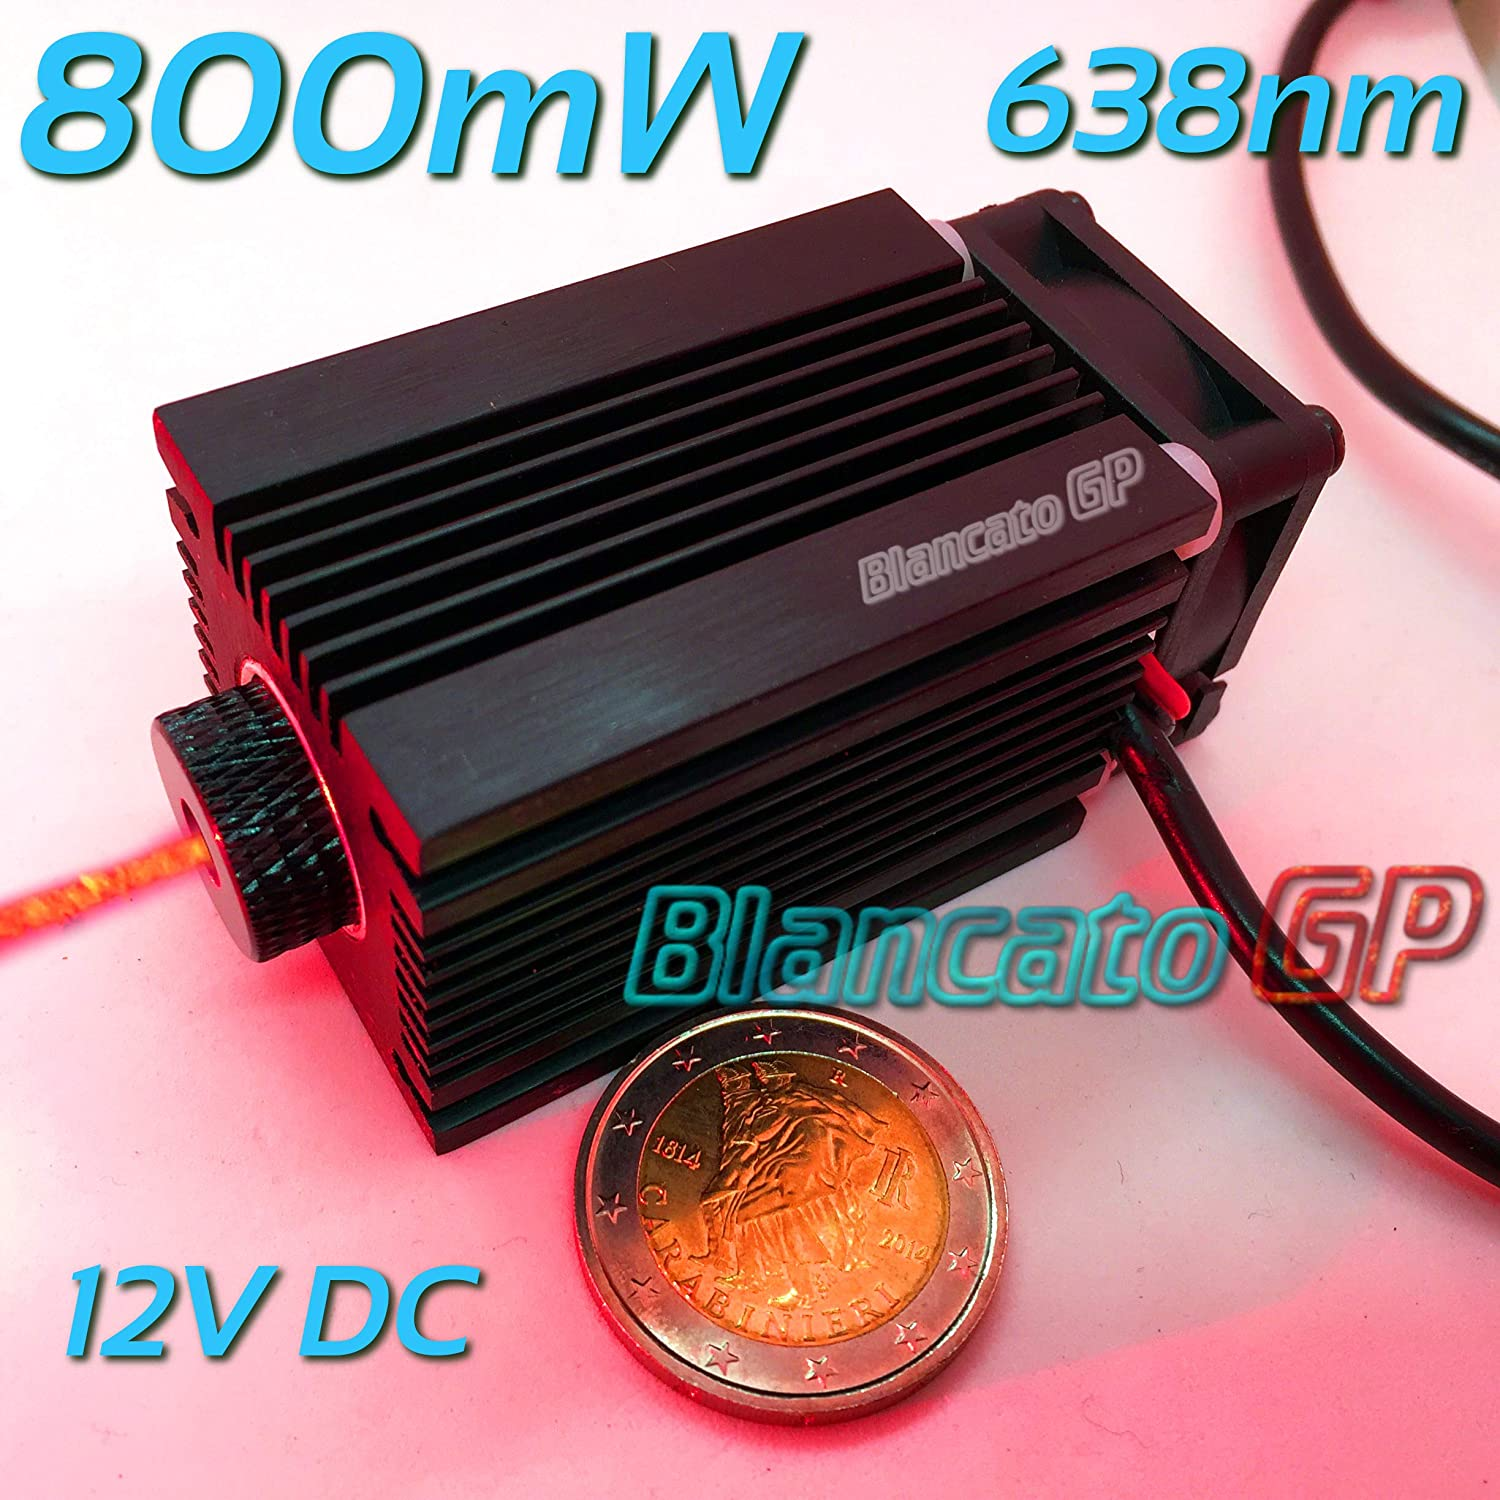 Module laser 12 V 638 Nm 800 mW 0.8 W point rouge Diode Module Focusable Red Dot BlancatoGP